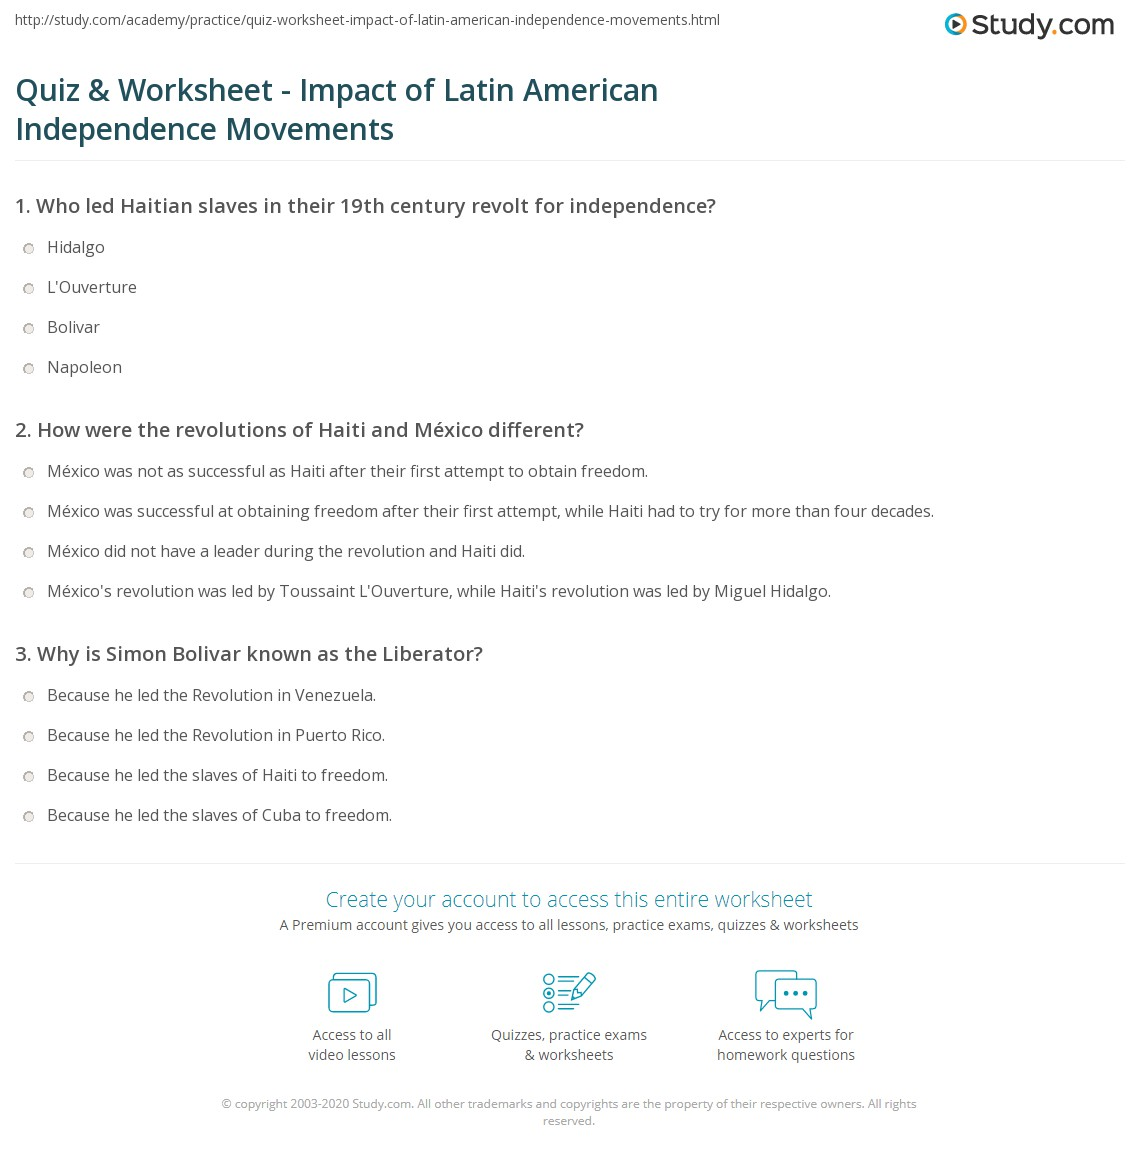 Aldiablosus  Splendid Quiz Amp Worksheet  Impact Of Latin American Independence Movements  With Exciting Print Independence Movements In Latin America Examples Amp Impact Worksheet With Beauteous Sensory Language Worksheets Also Little Red Hen Printable Worksheets In Addition Math Practice Worksheets For Th Grade And Simple And Complete Subject And Predicate Worksheets As Well As Addition Worksheets Year  Additionally Split Digraphs Worksheets From Studycom With Aldiablosus  Exciting Quiz Amp Worksheet  Impact Of Latin American Independence Movements  With Beauteous Print Independence Movements In Latin America Examples Amp Impact Worksheet And Splendid Sensory Language Worksheets Also Little Red Hen Printable Worksheets In Addition Math Practice Worksheets For Th Grade From Studycom